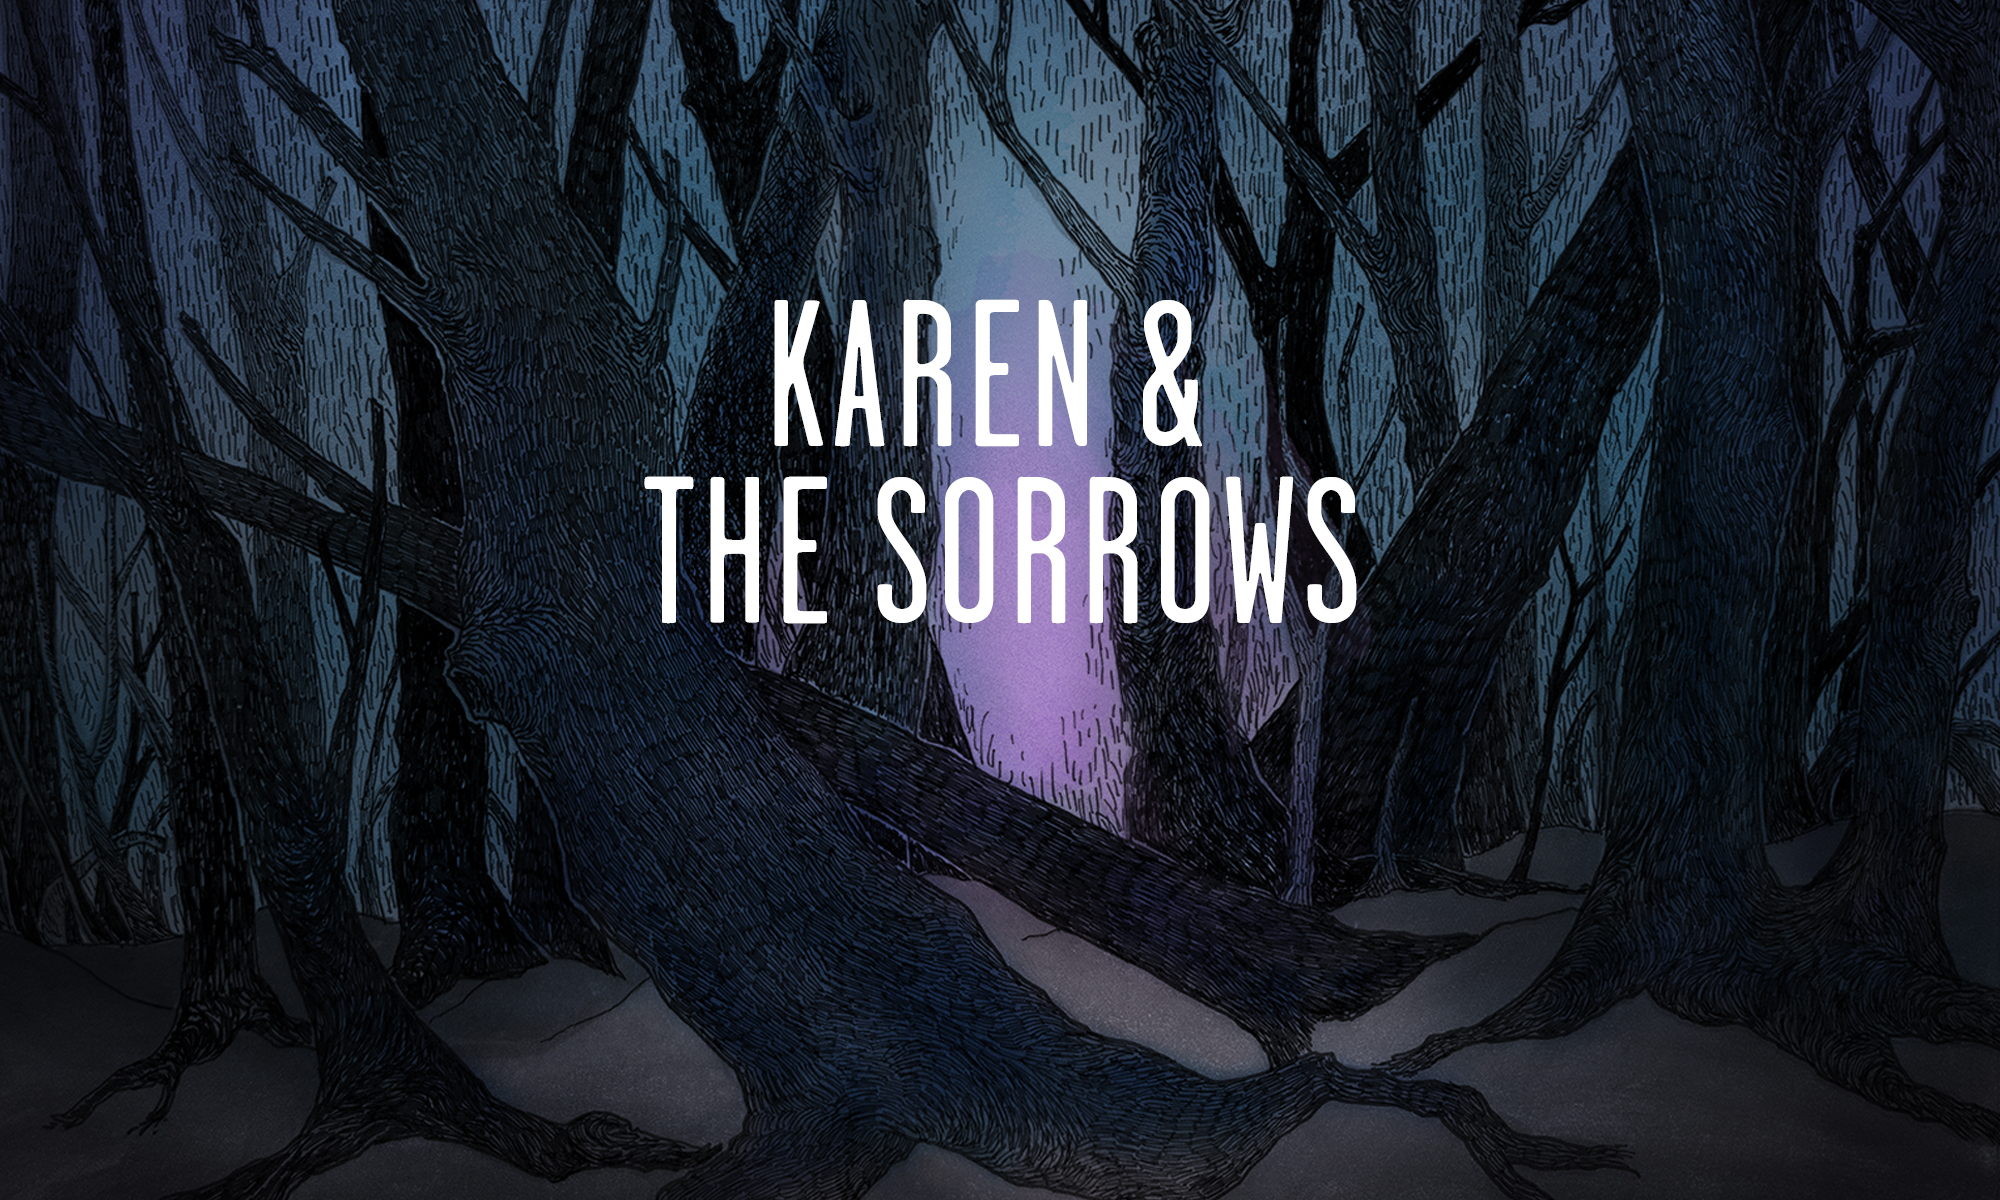 Karen & the Sorrows